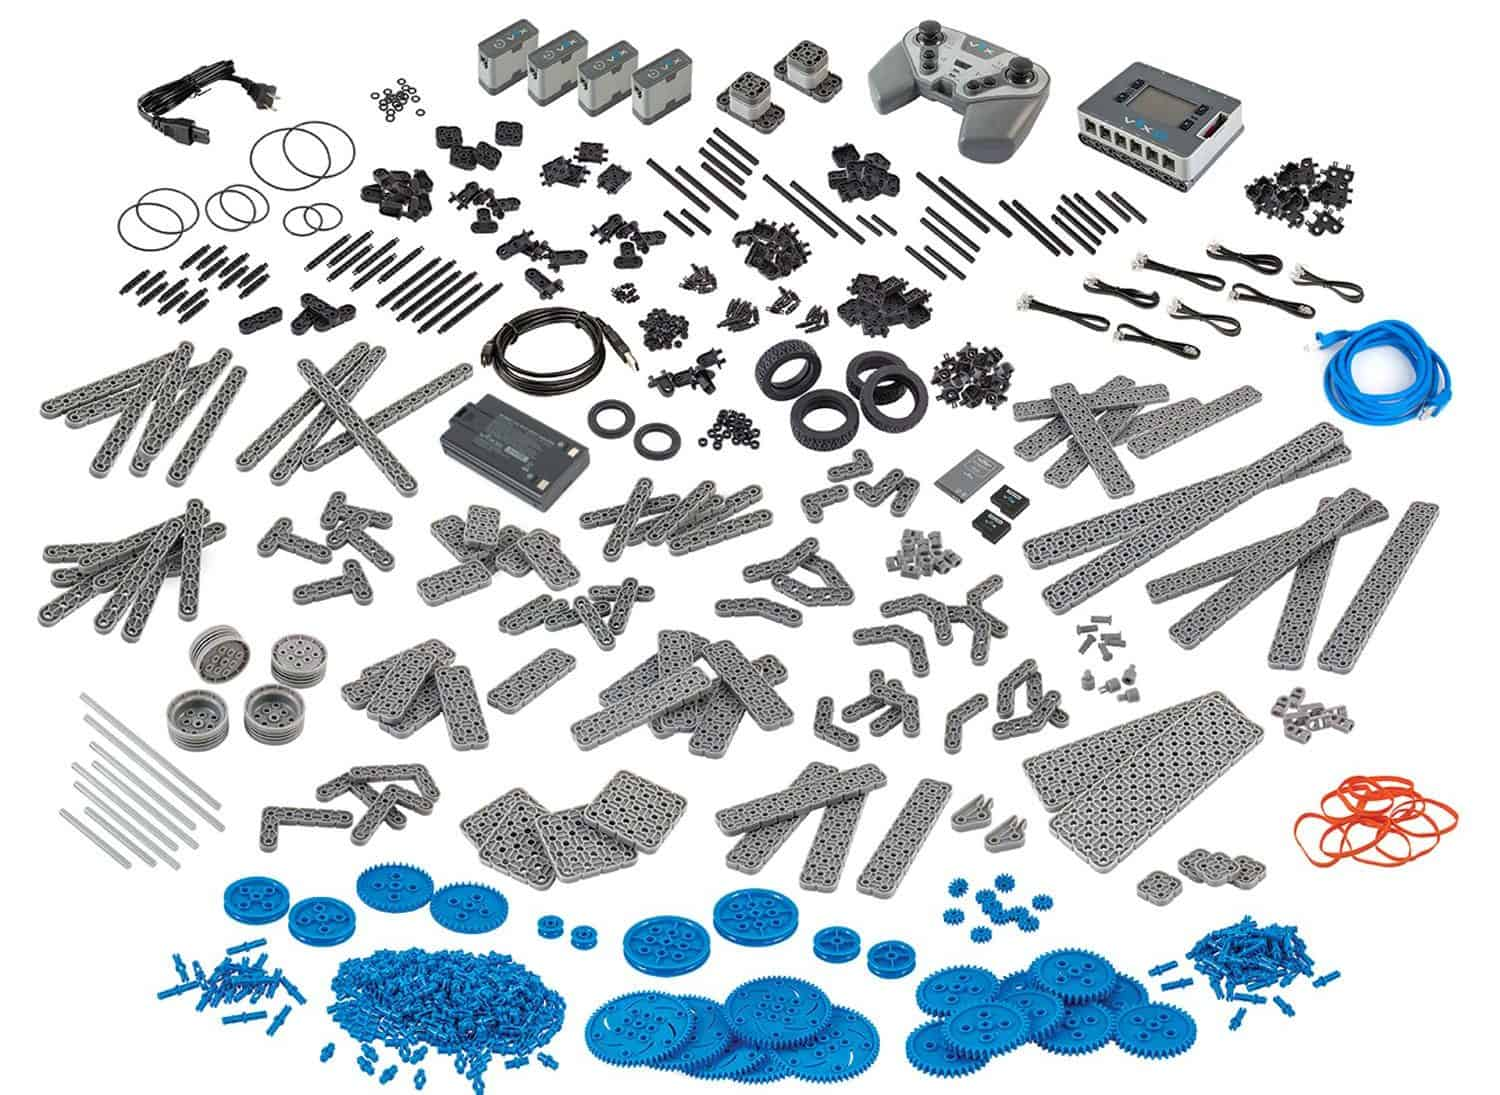 the vex iq robotics kit components